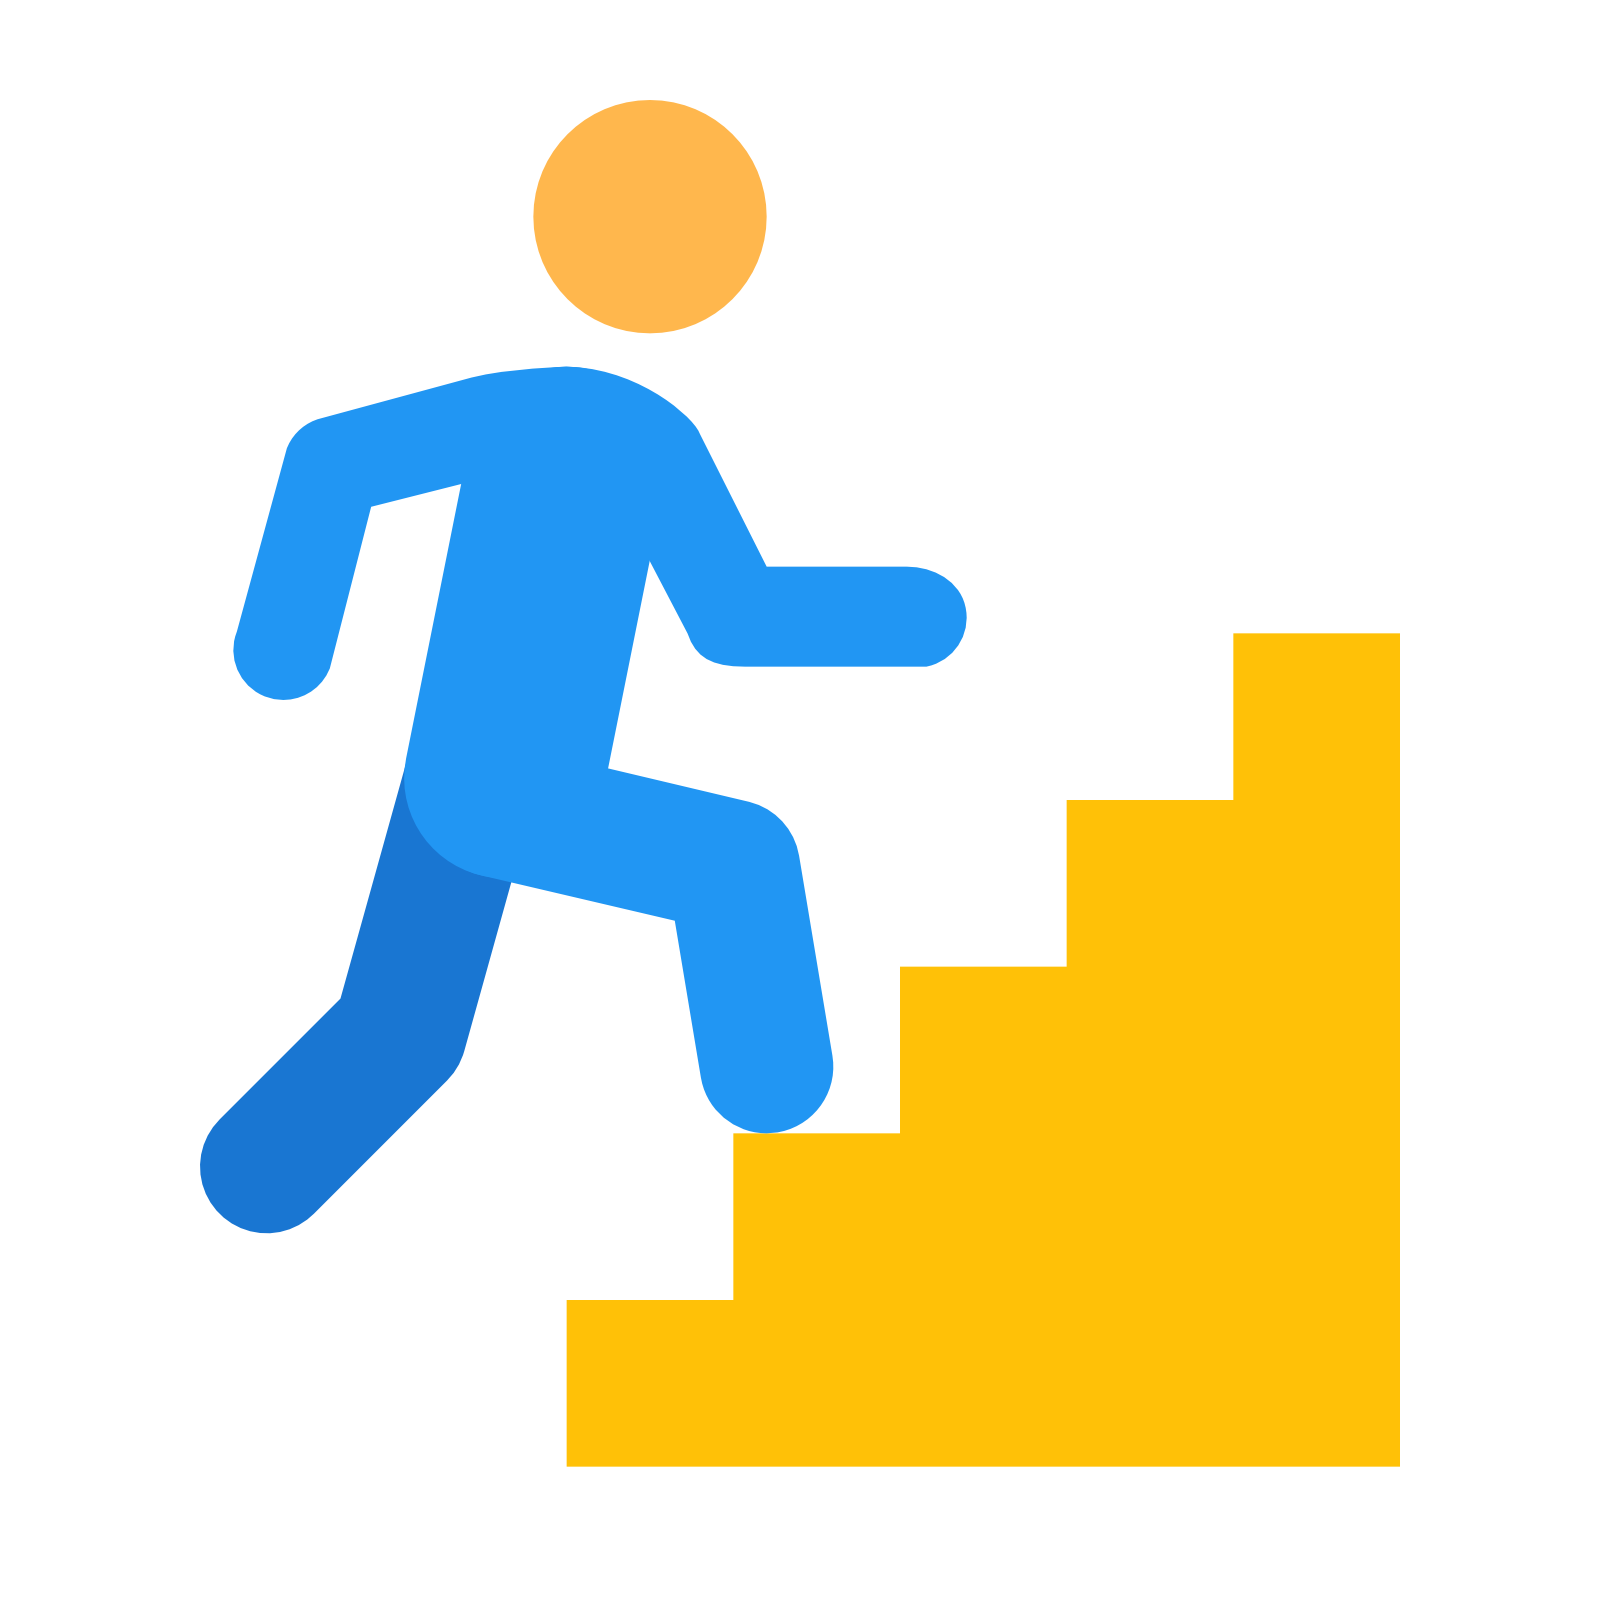 Podium clipart staircase.  best stairs icon